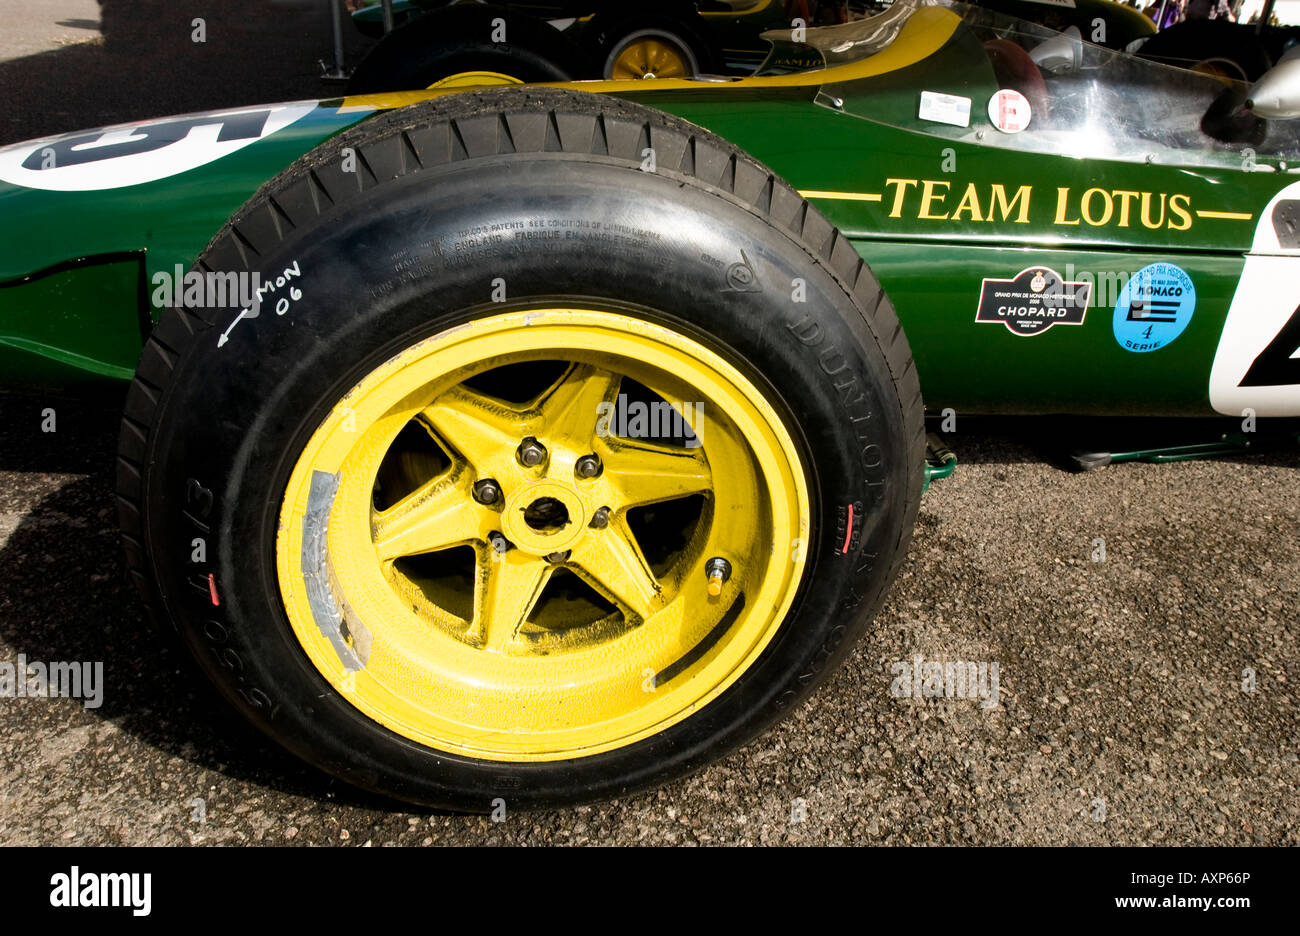 vintage formula one F1 racing car Lotus classic power with yellow wheels in British  Racing Green Team Lotus tyre tire